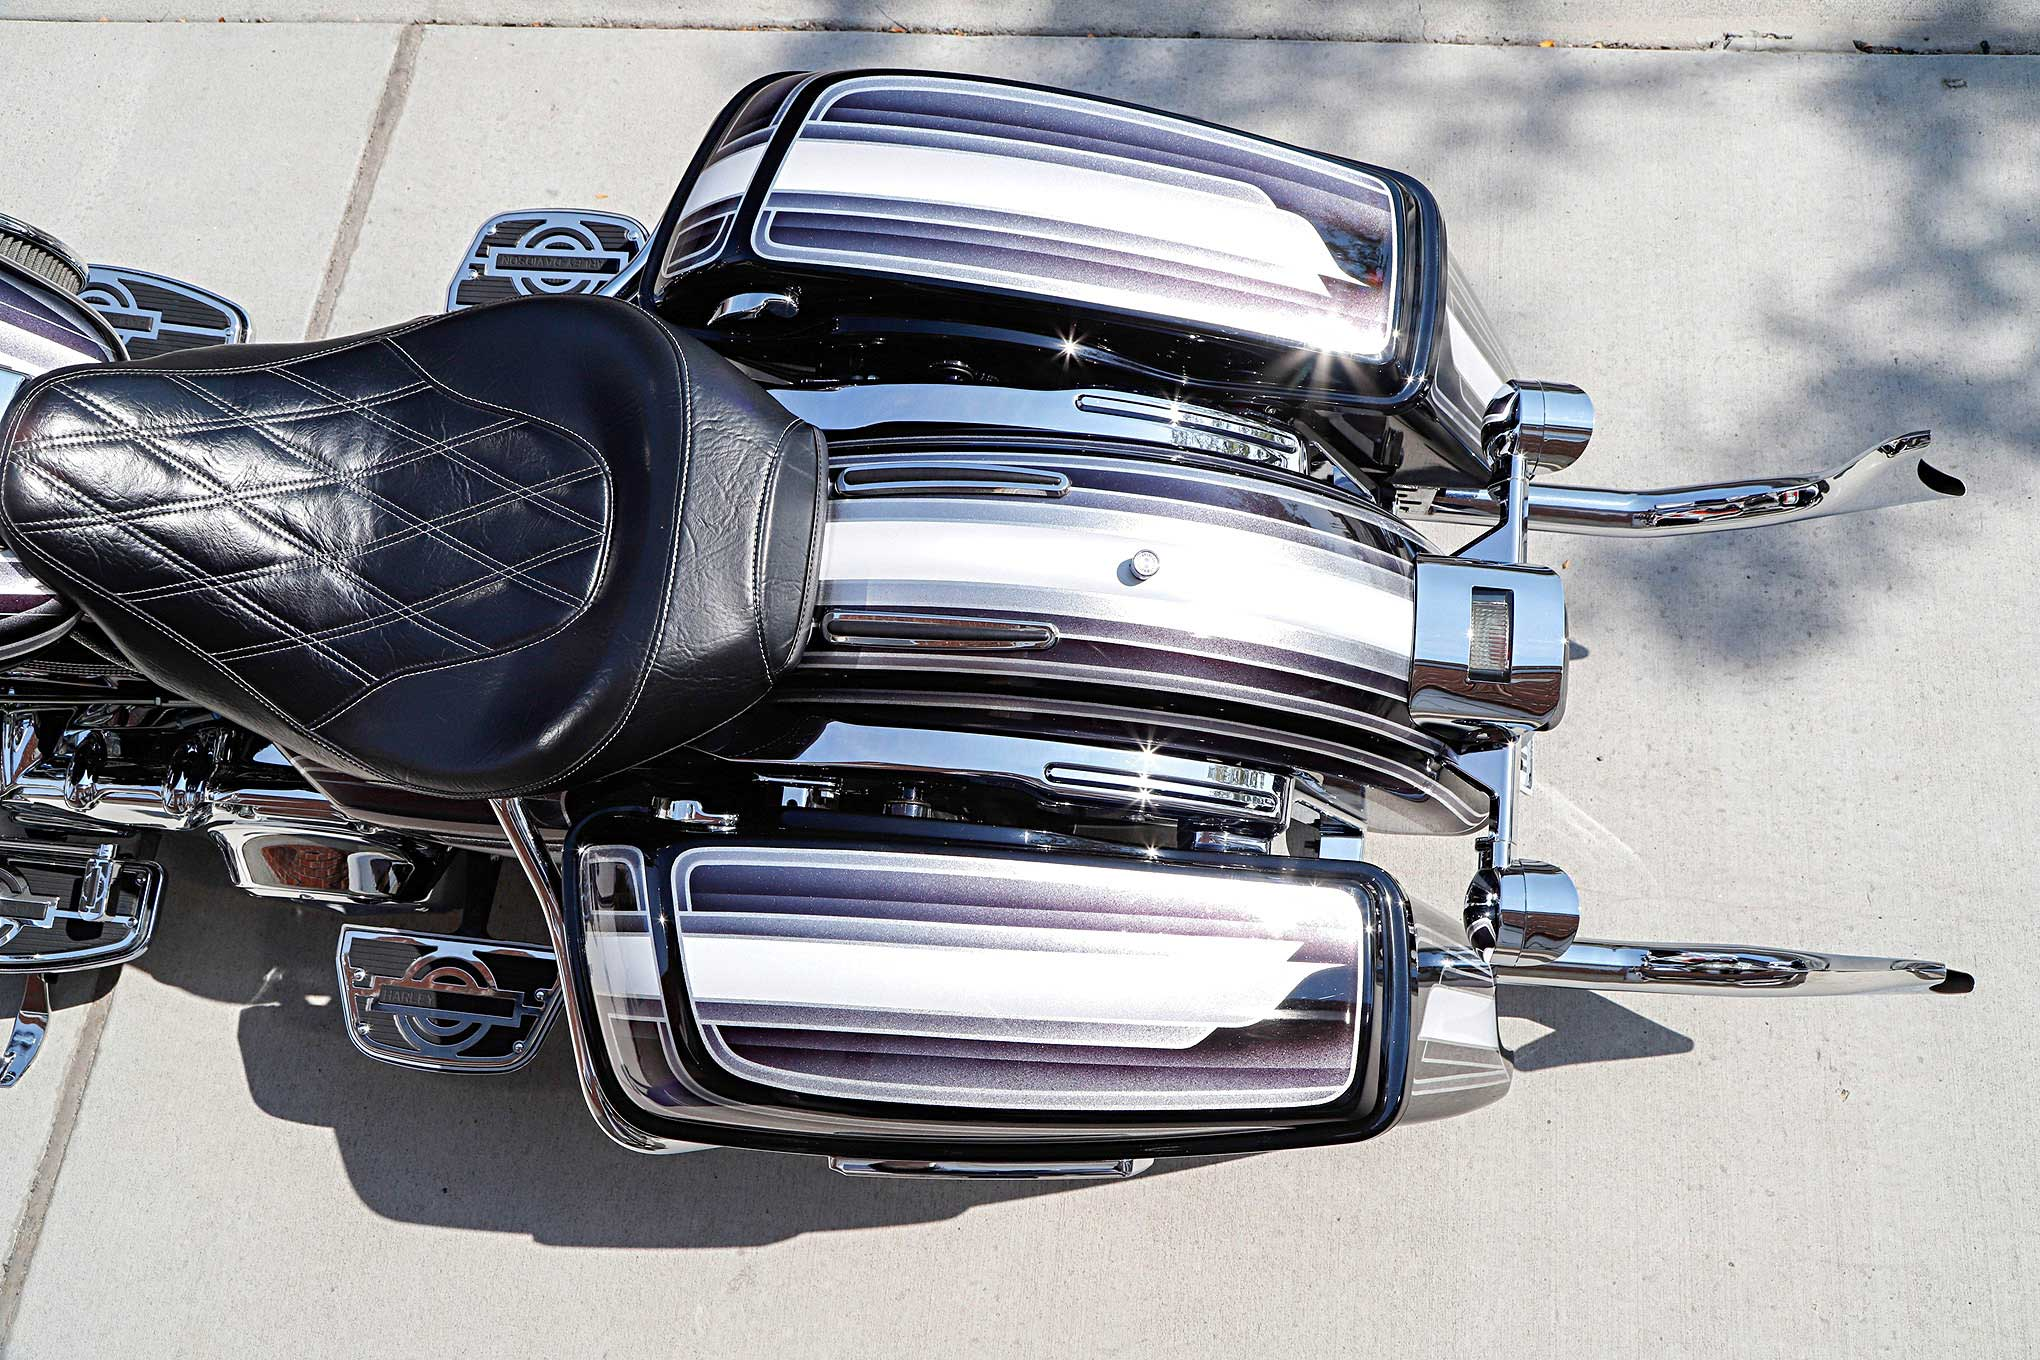 2014 Harley-Davidson Road King - A Date With Fate